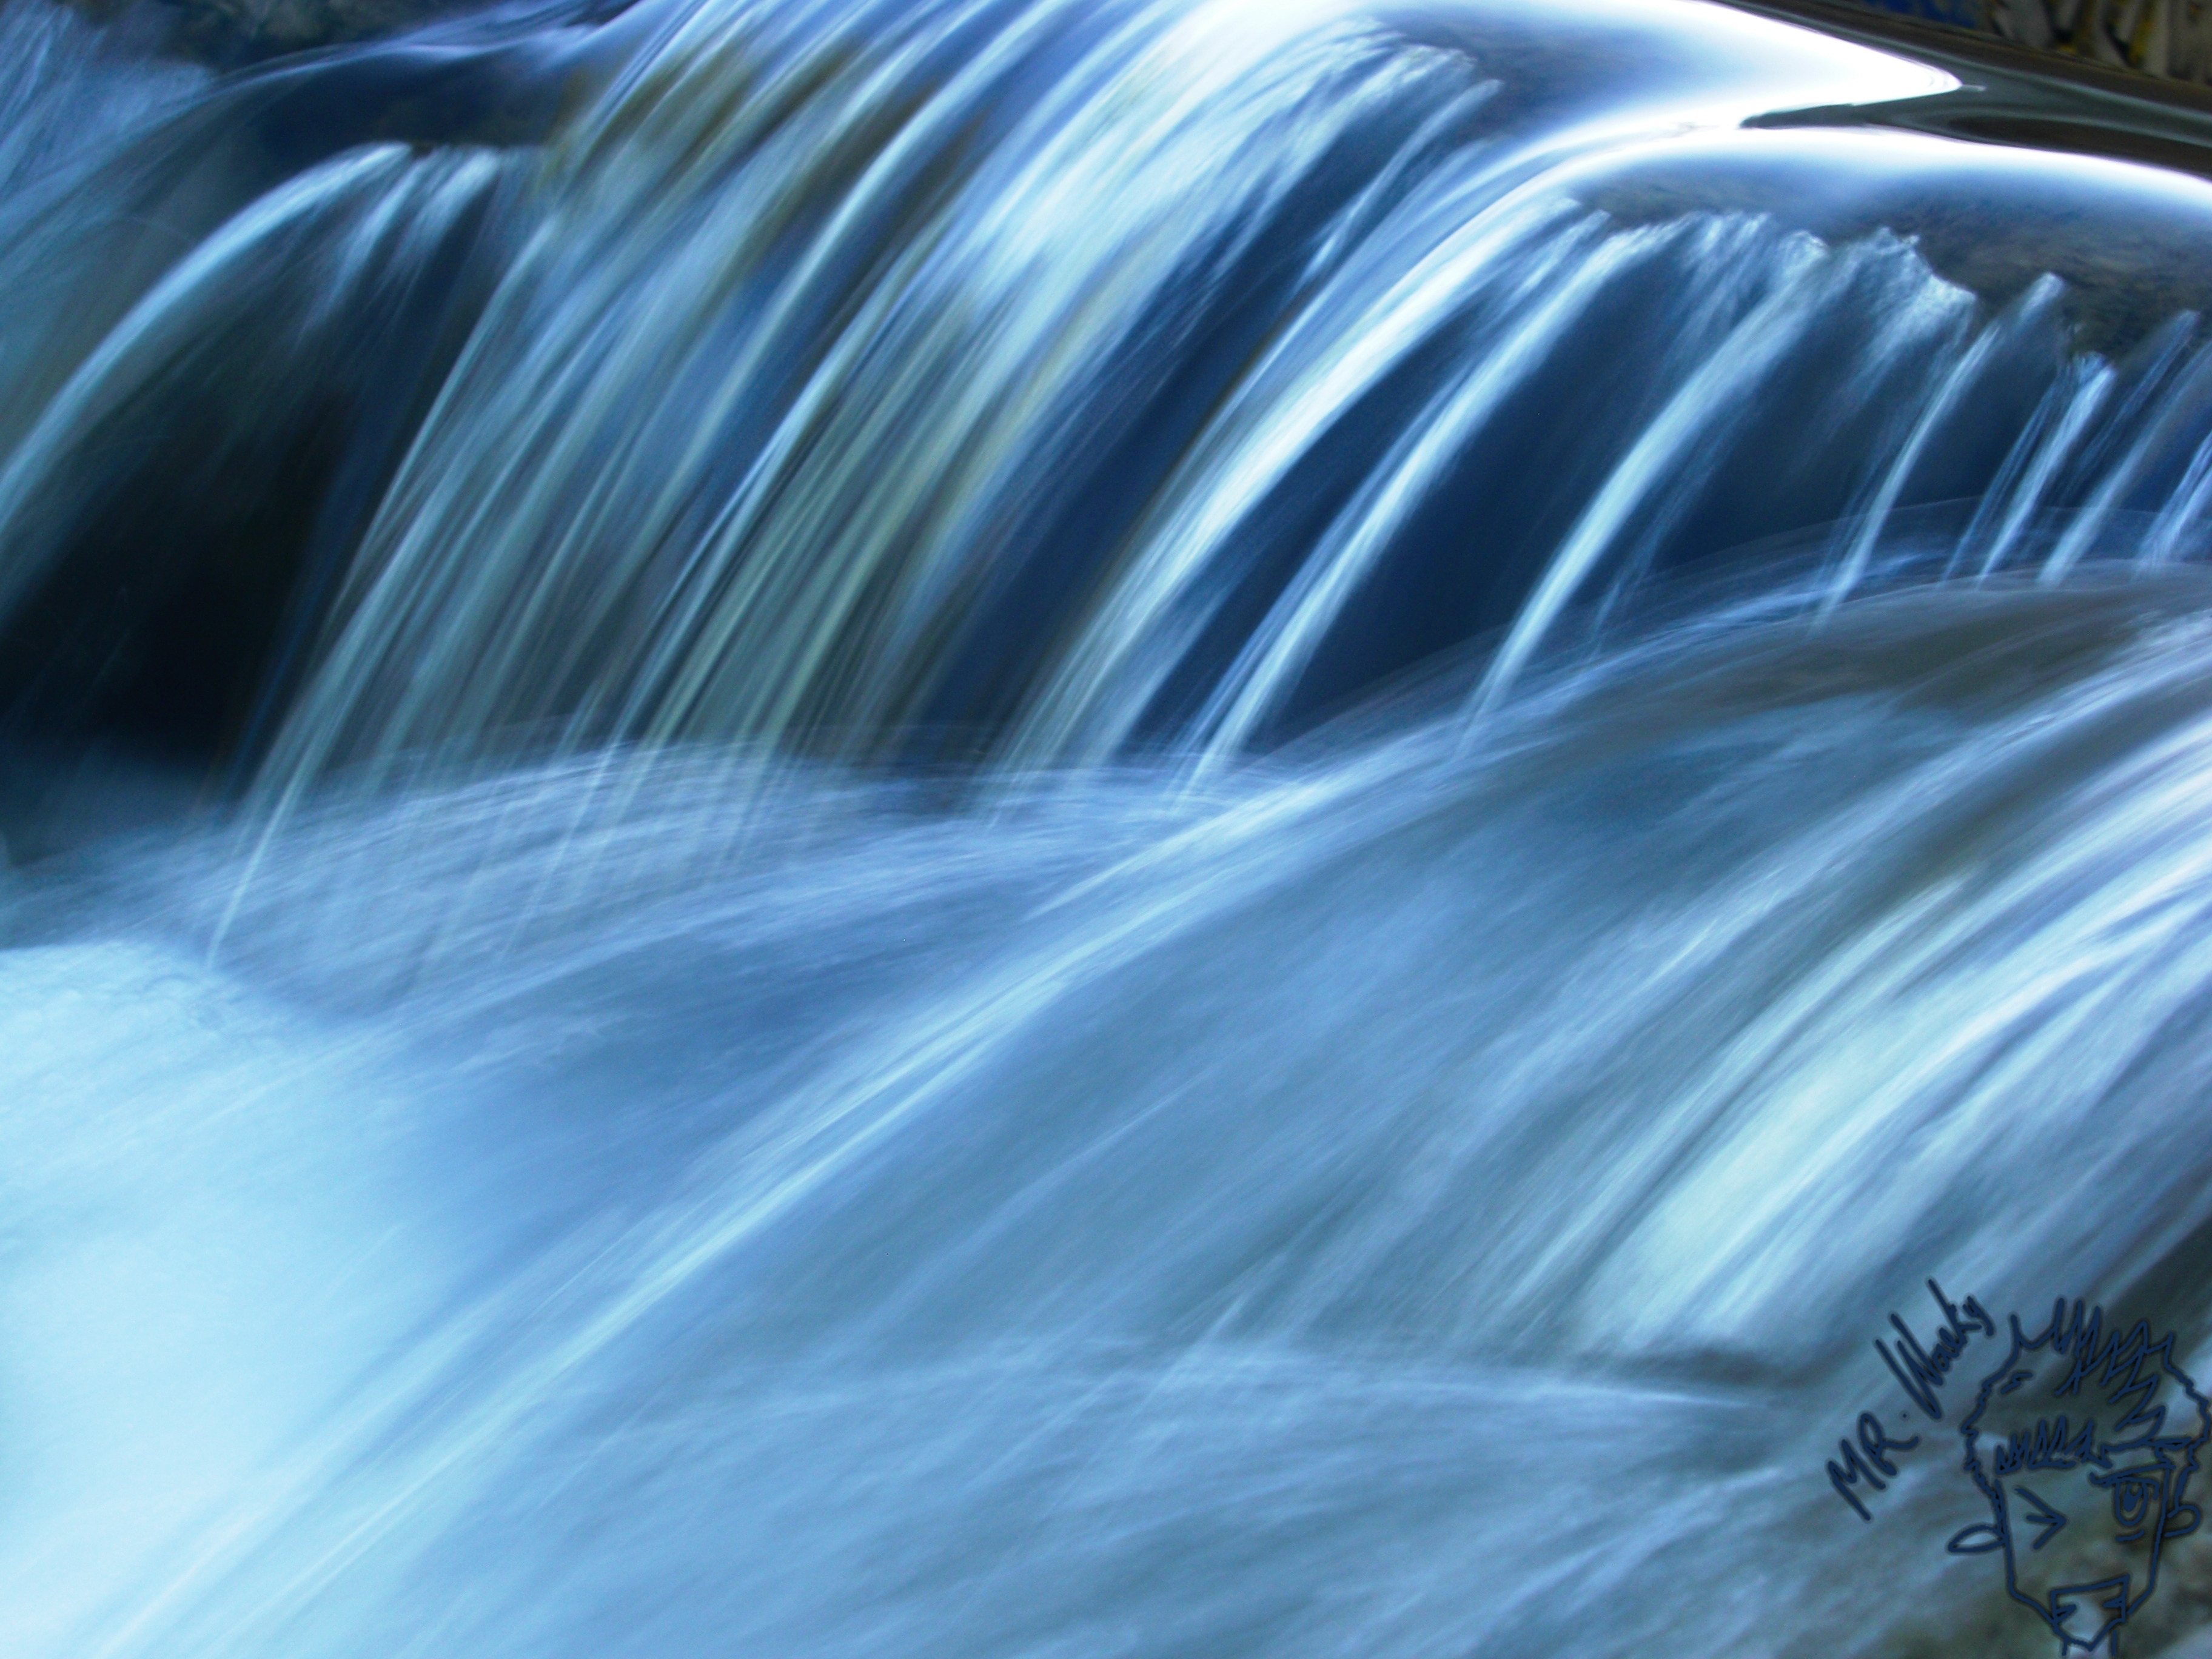 Water Flow by waqarwru on DeviantArt